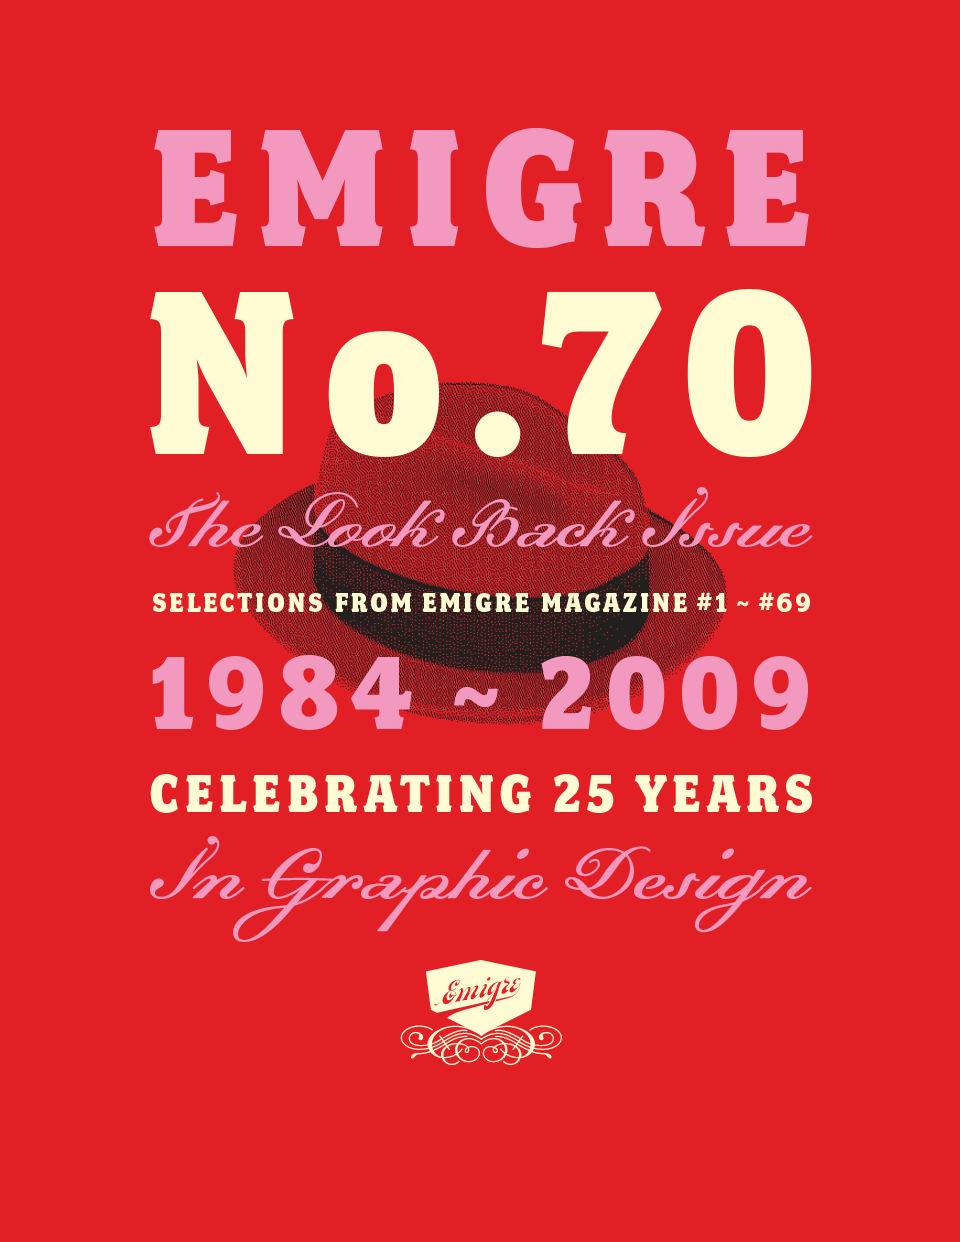 Emigre No. 70: The Look Back Issue - Selections from Emigre magazine #1 - #69